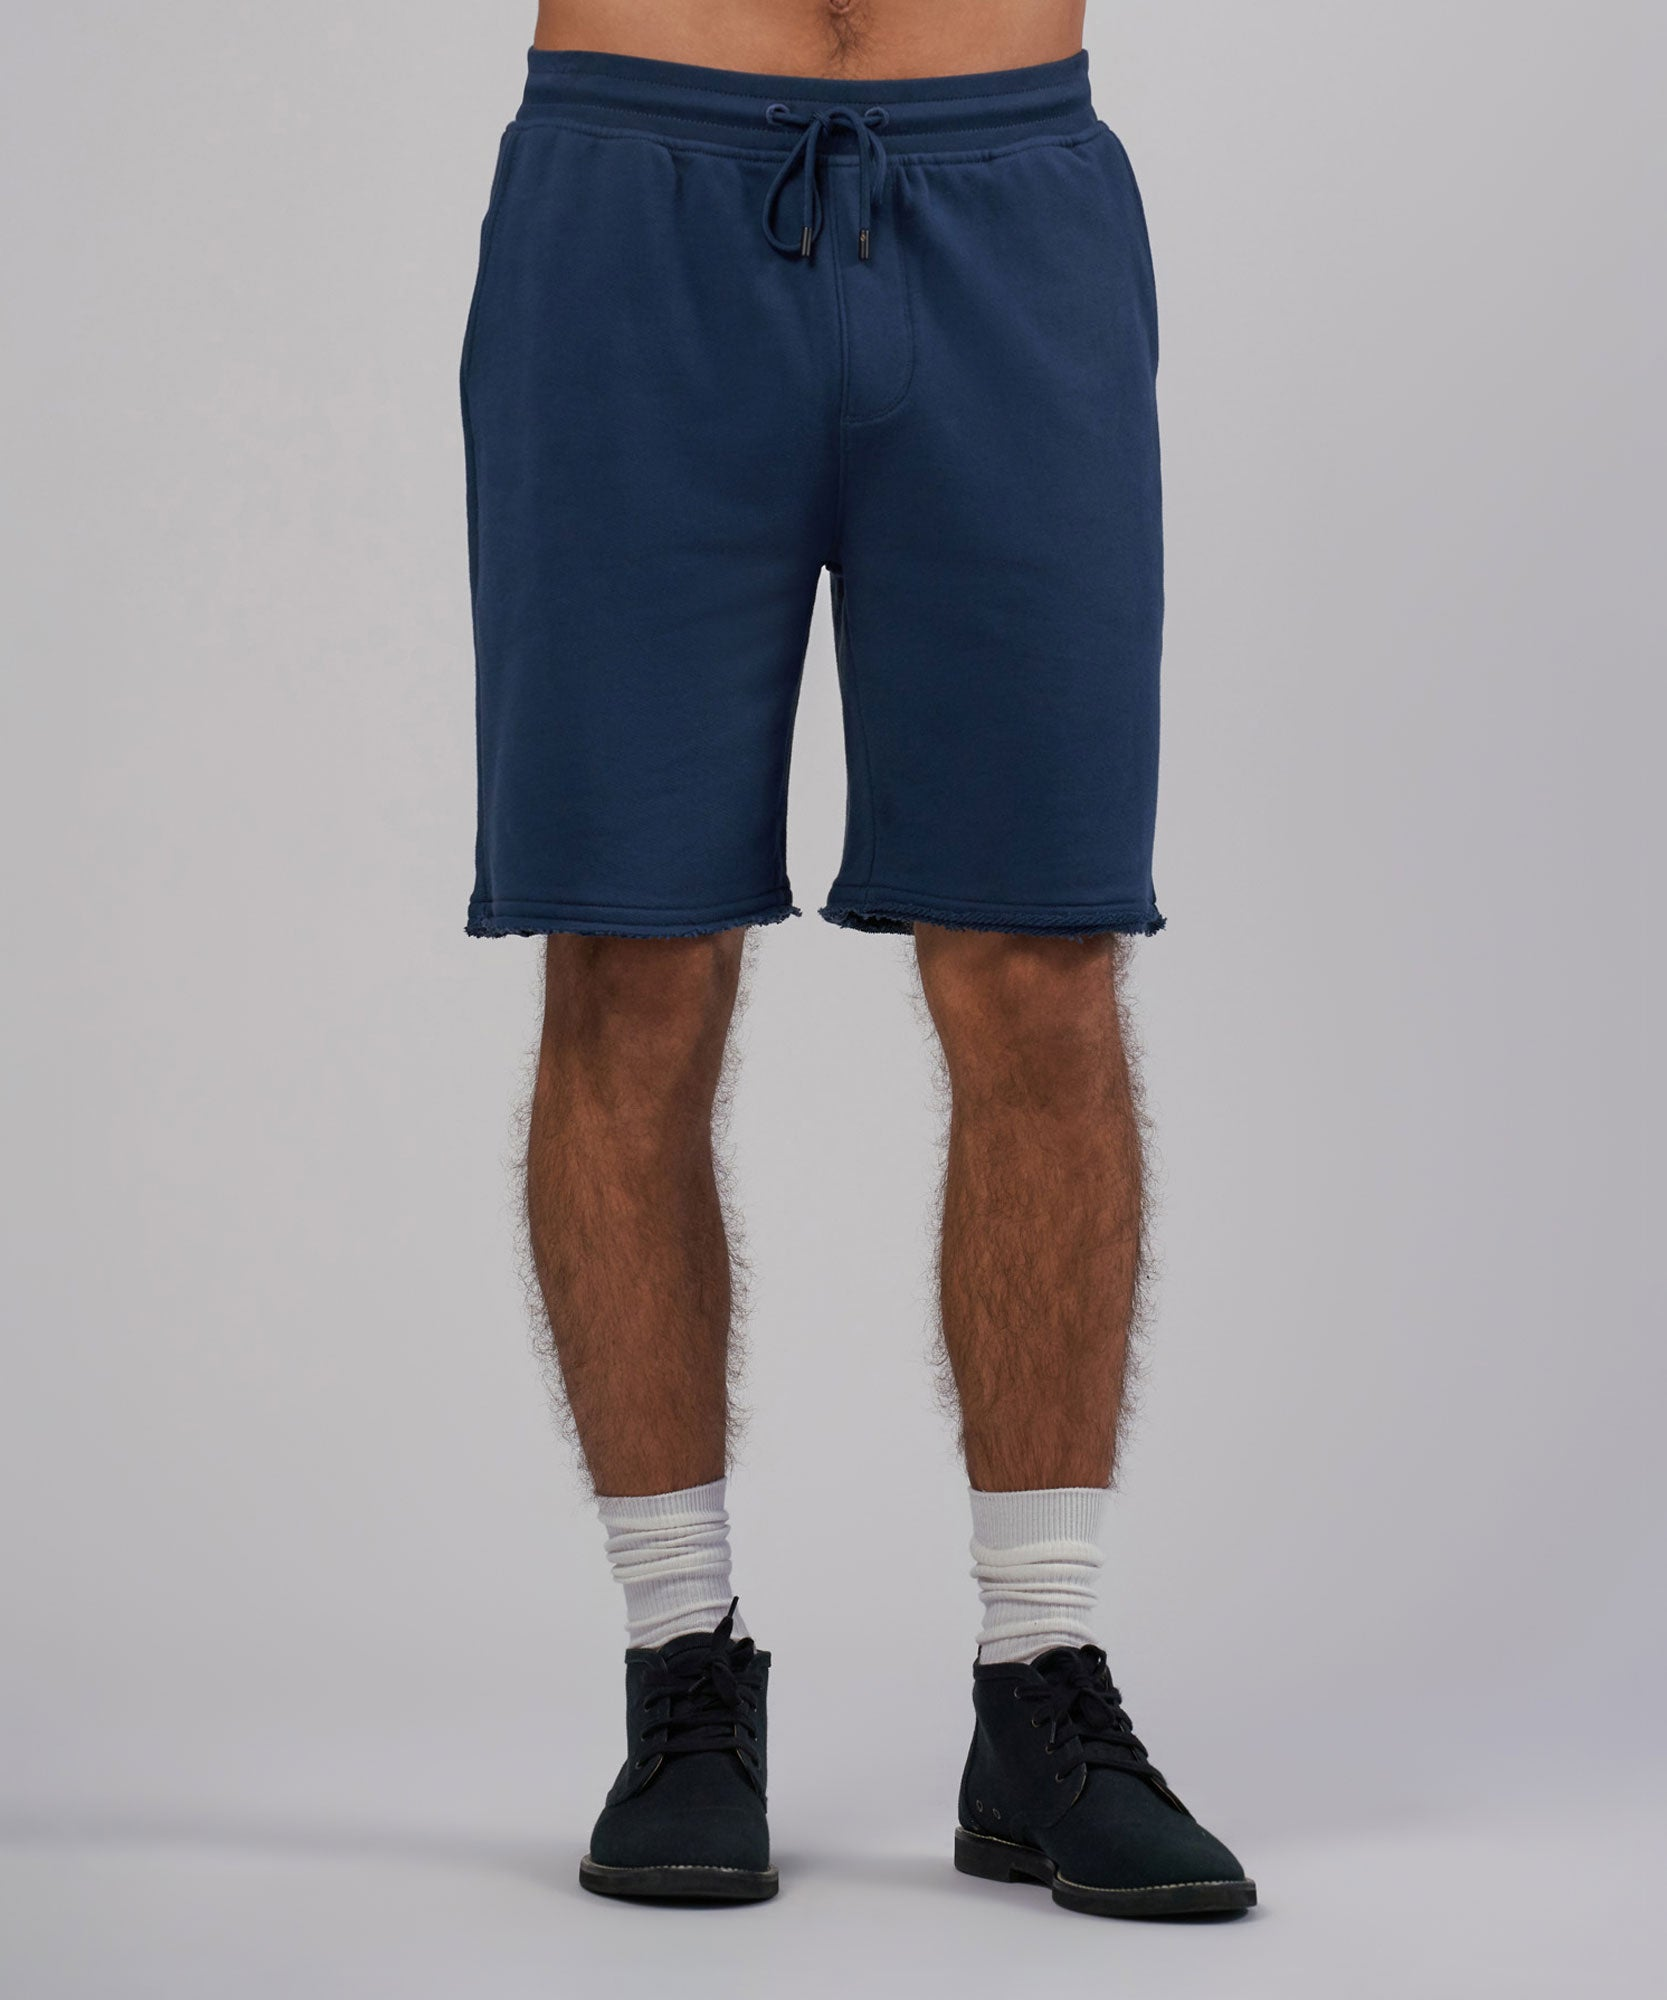 Indigo French Terry Slim Pull-On Shorts - Men's Luxe Loungewear by ATM Anthony Thomas Melillo